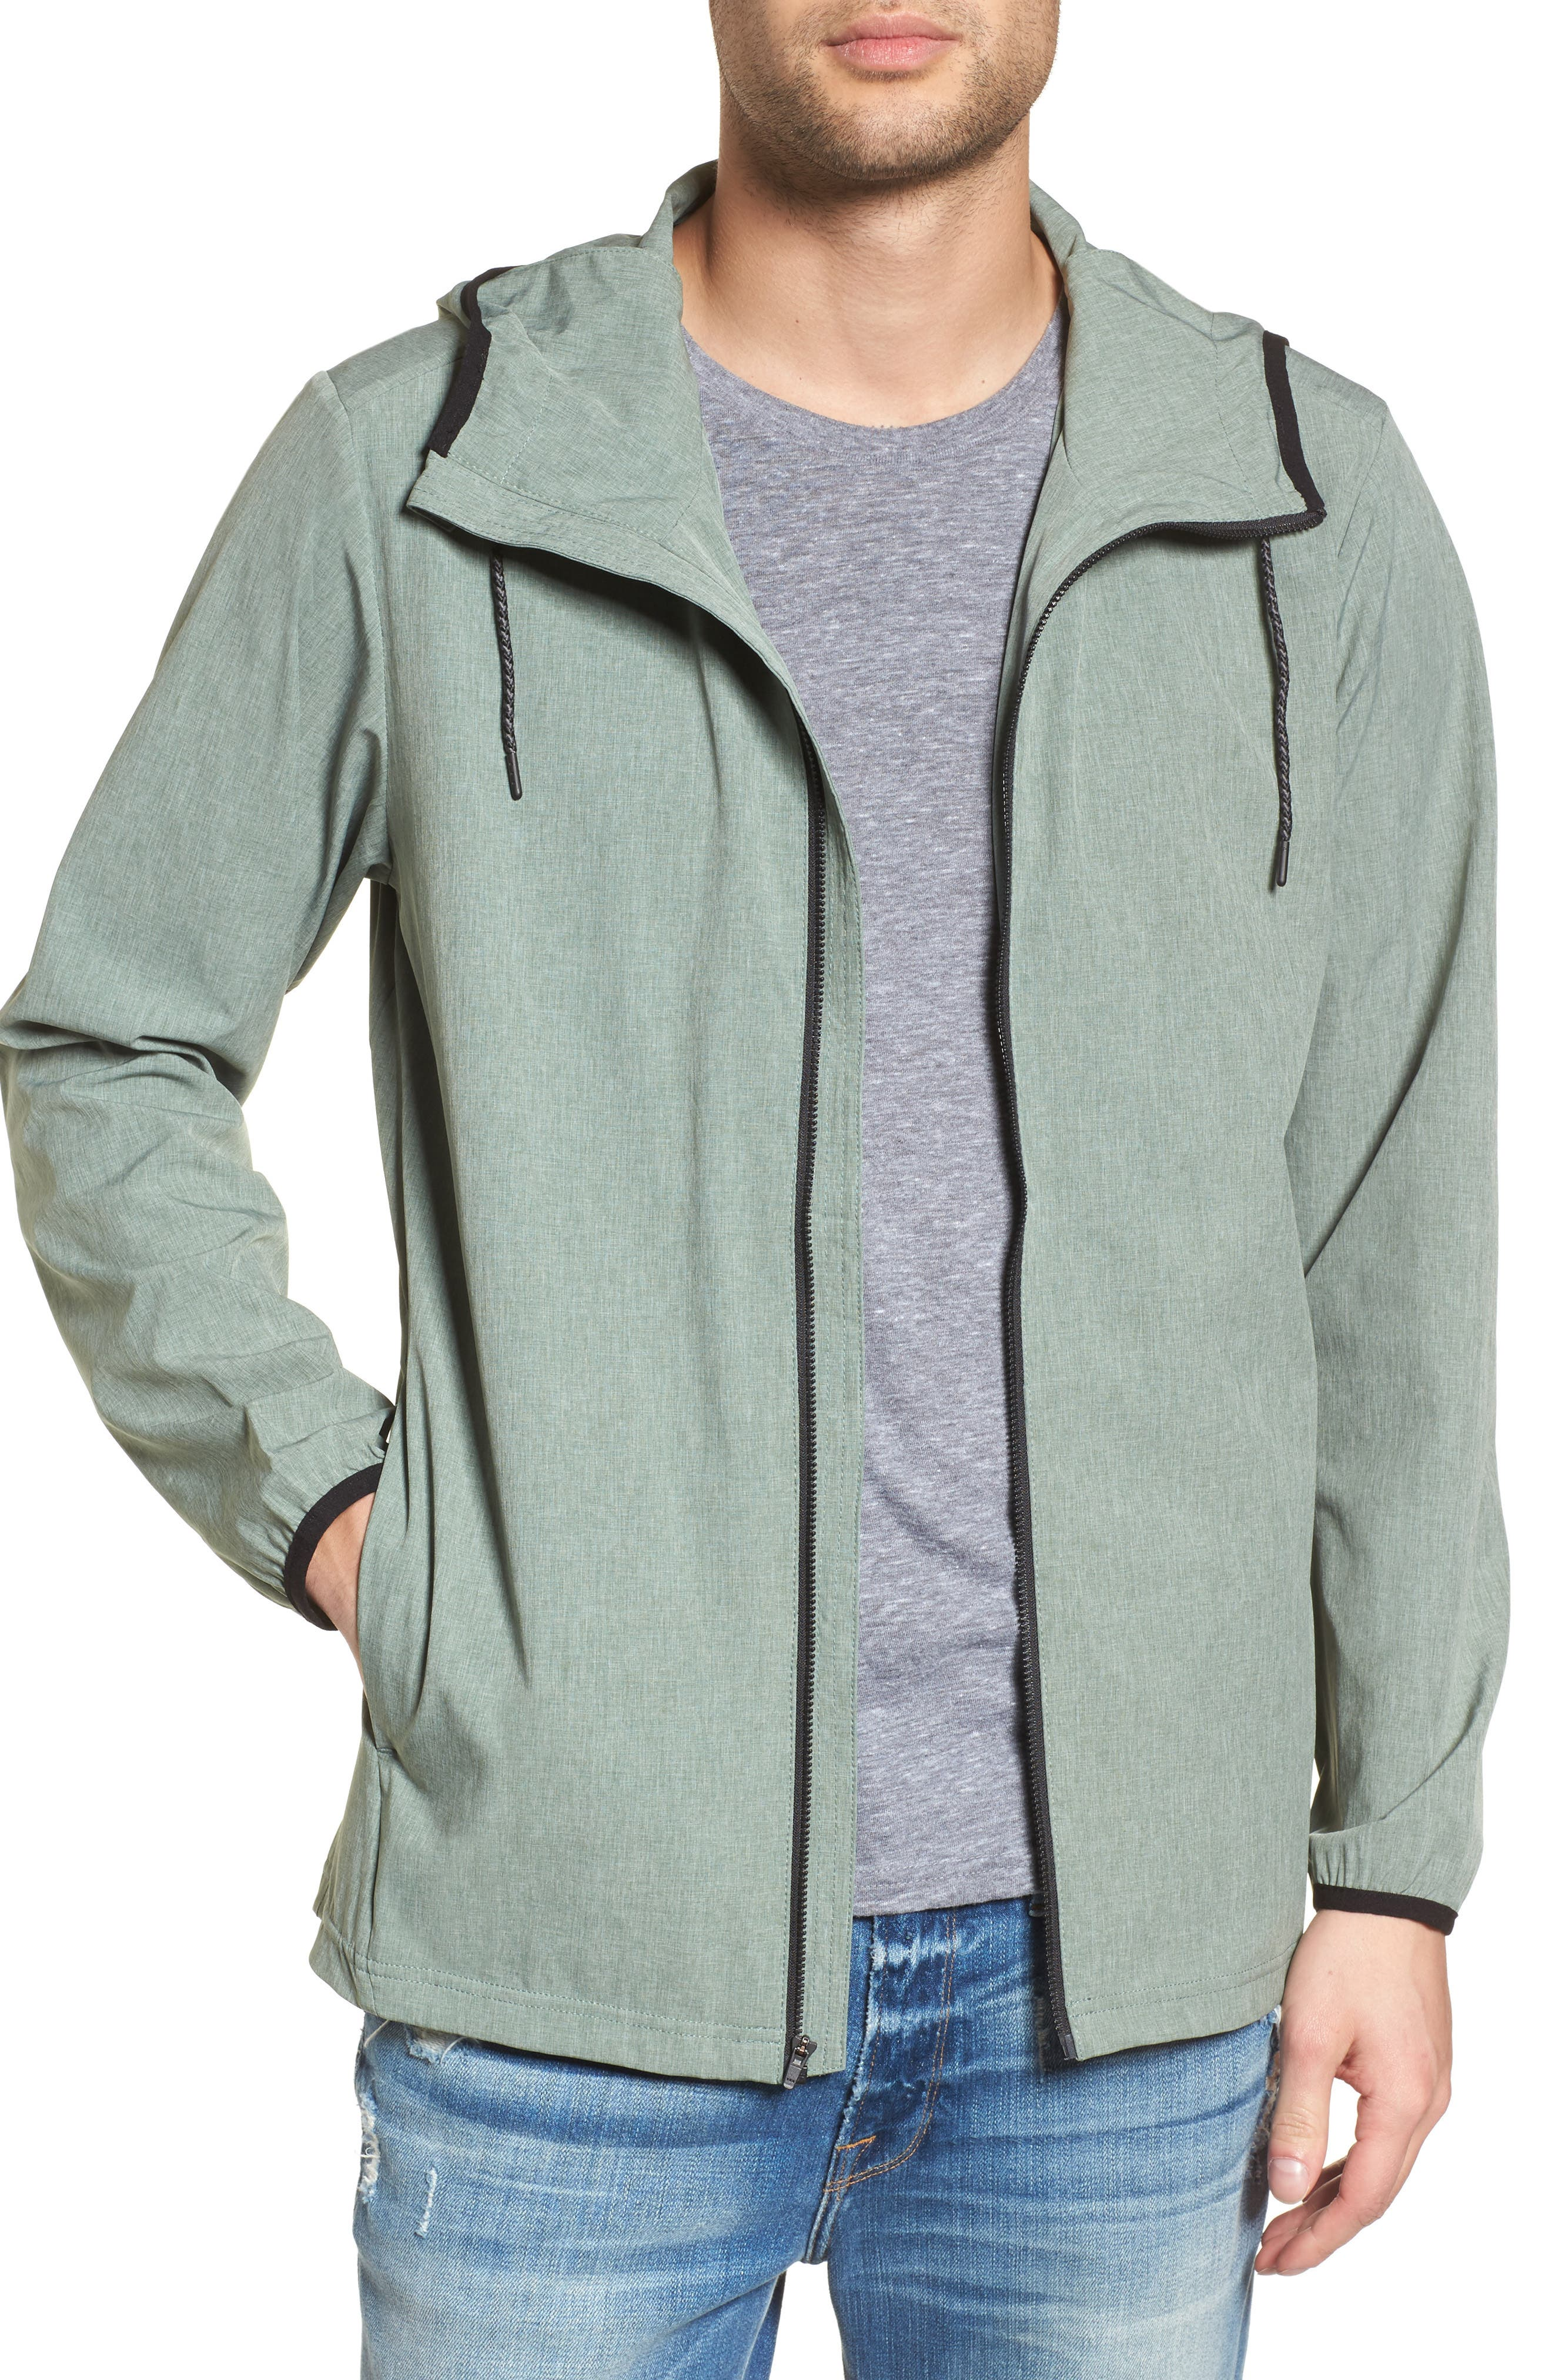 Hurley Protect Stretch 2.0 Jacket